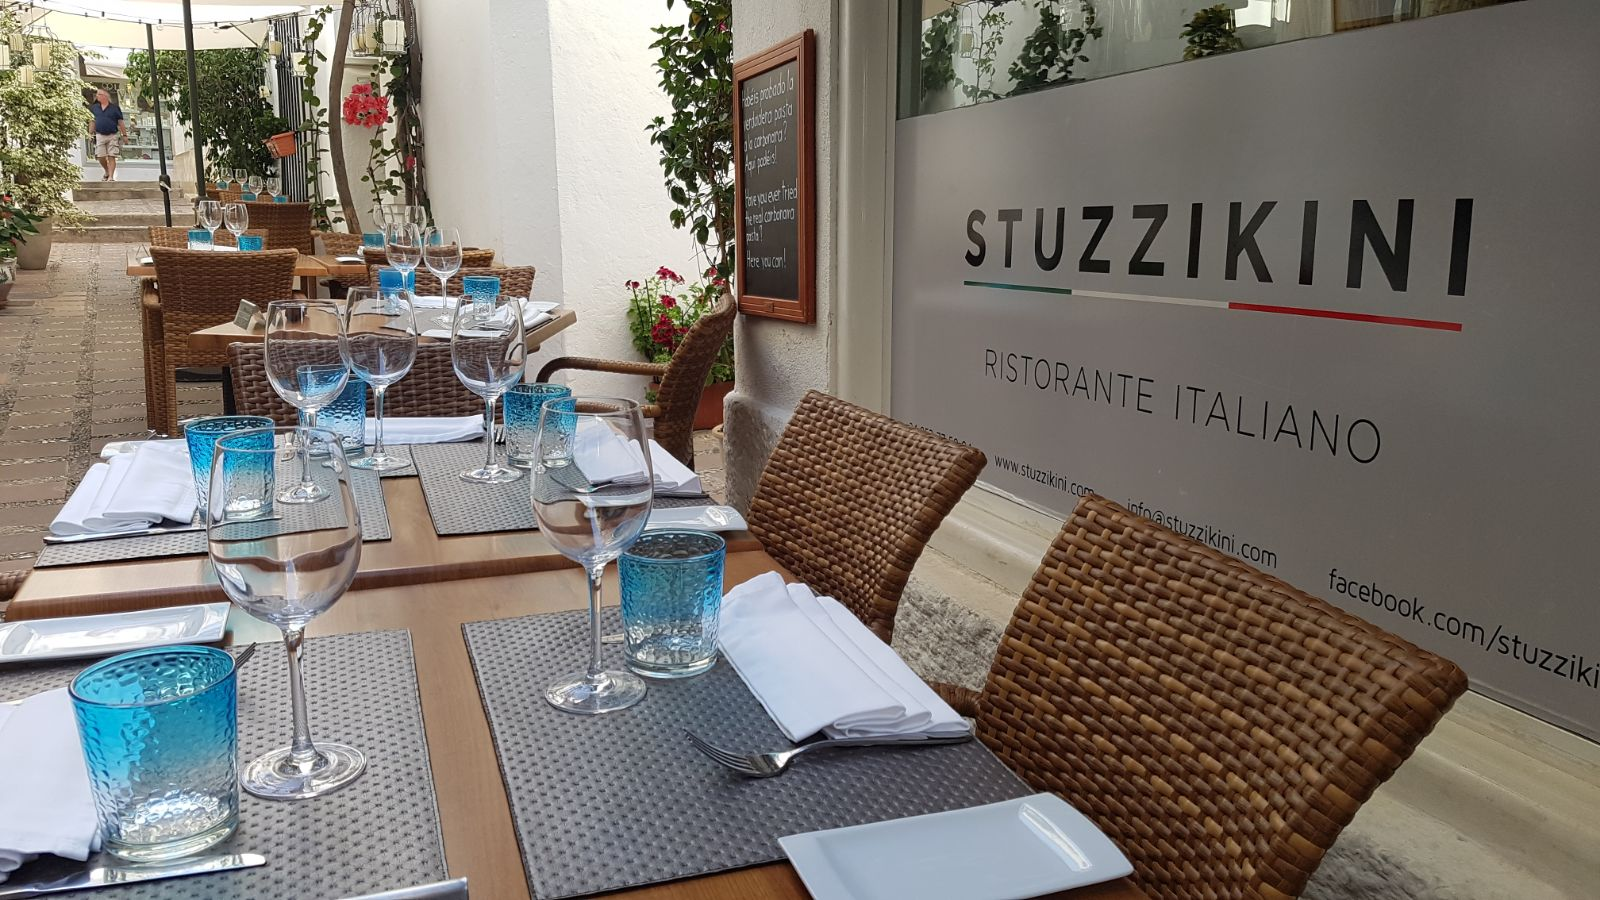 Street View of Stuzzikini Restaurant in Marbella Old Town